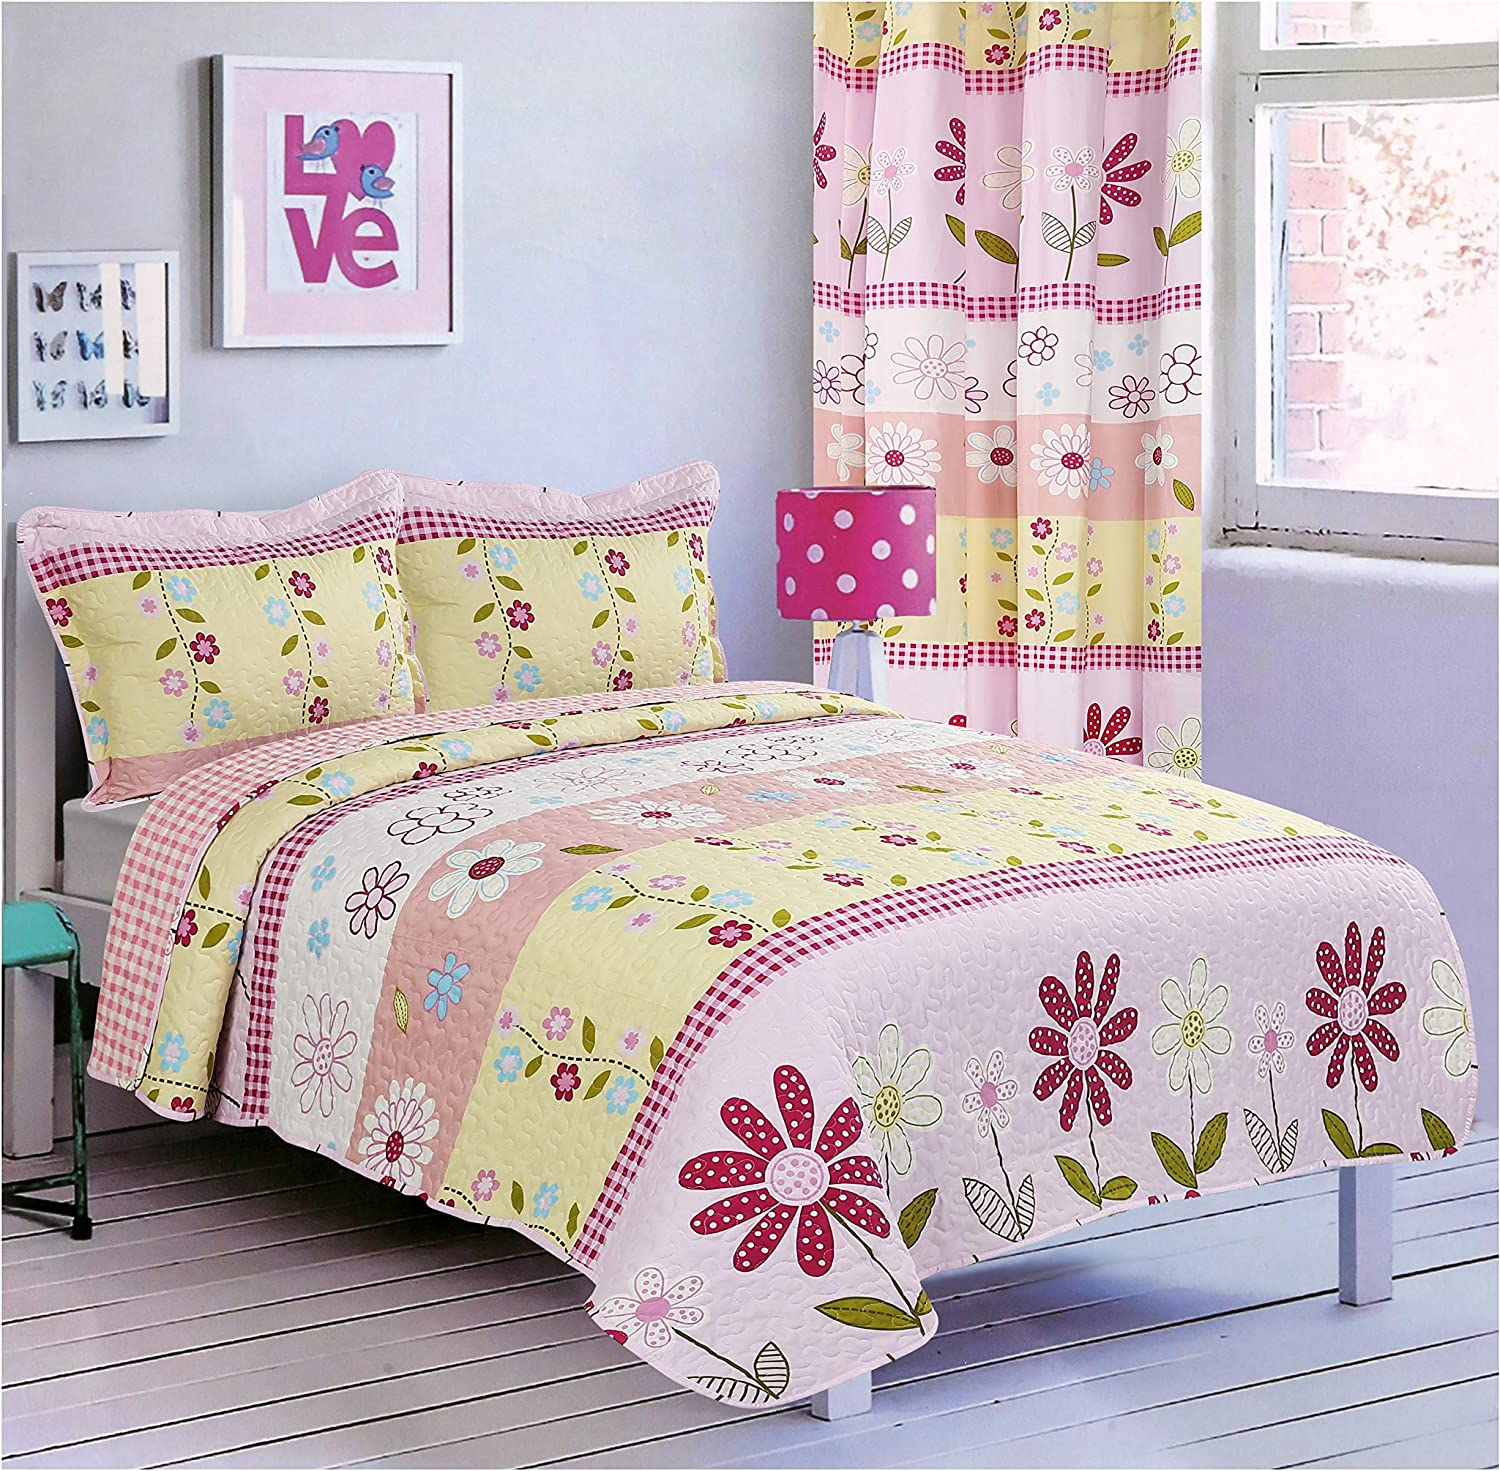 Amazon.com: All American Collection Teens/Girls Bedspread and